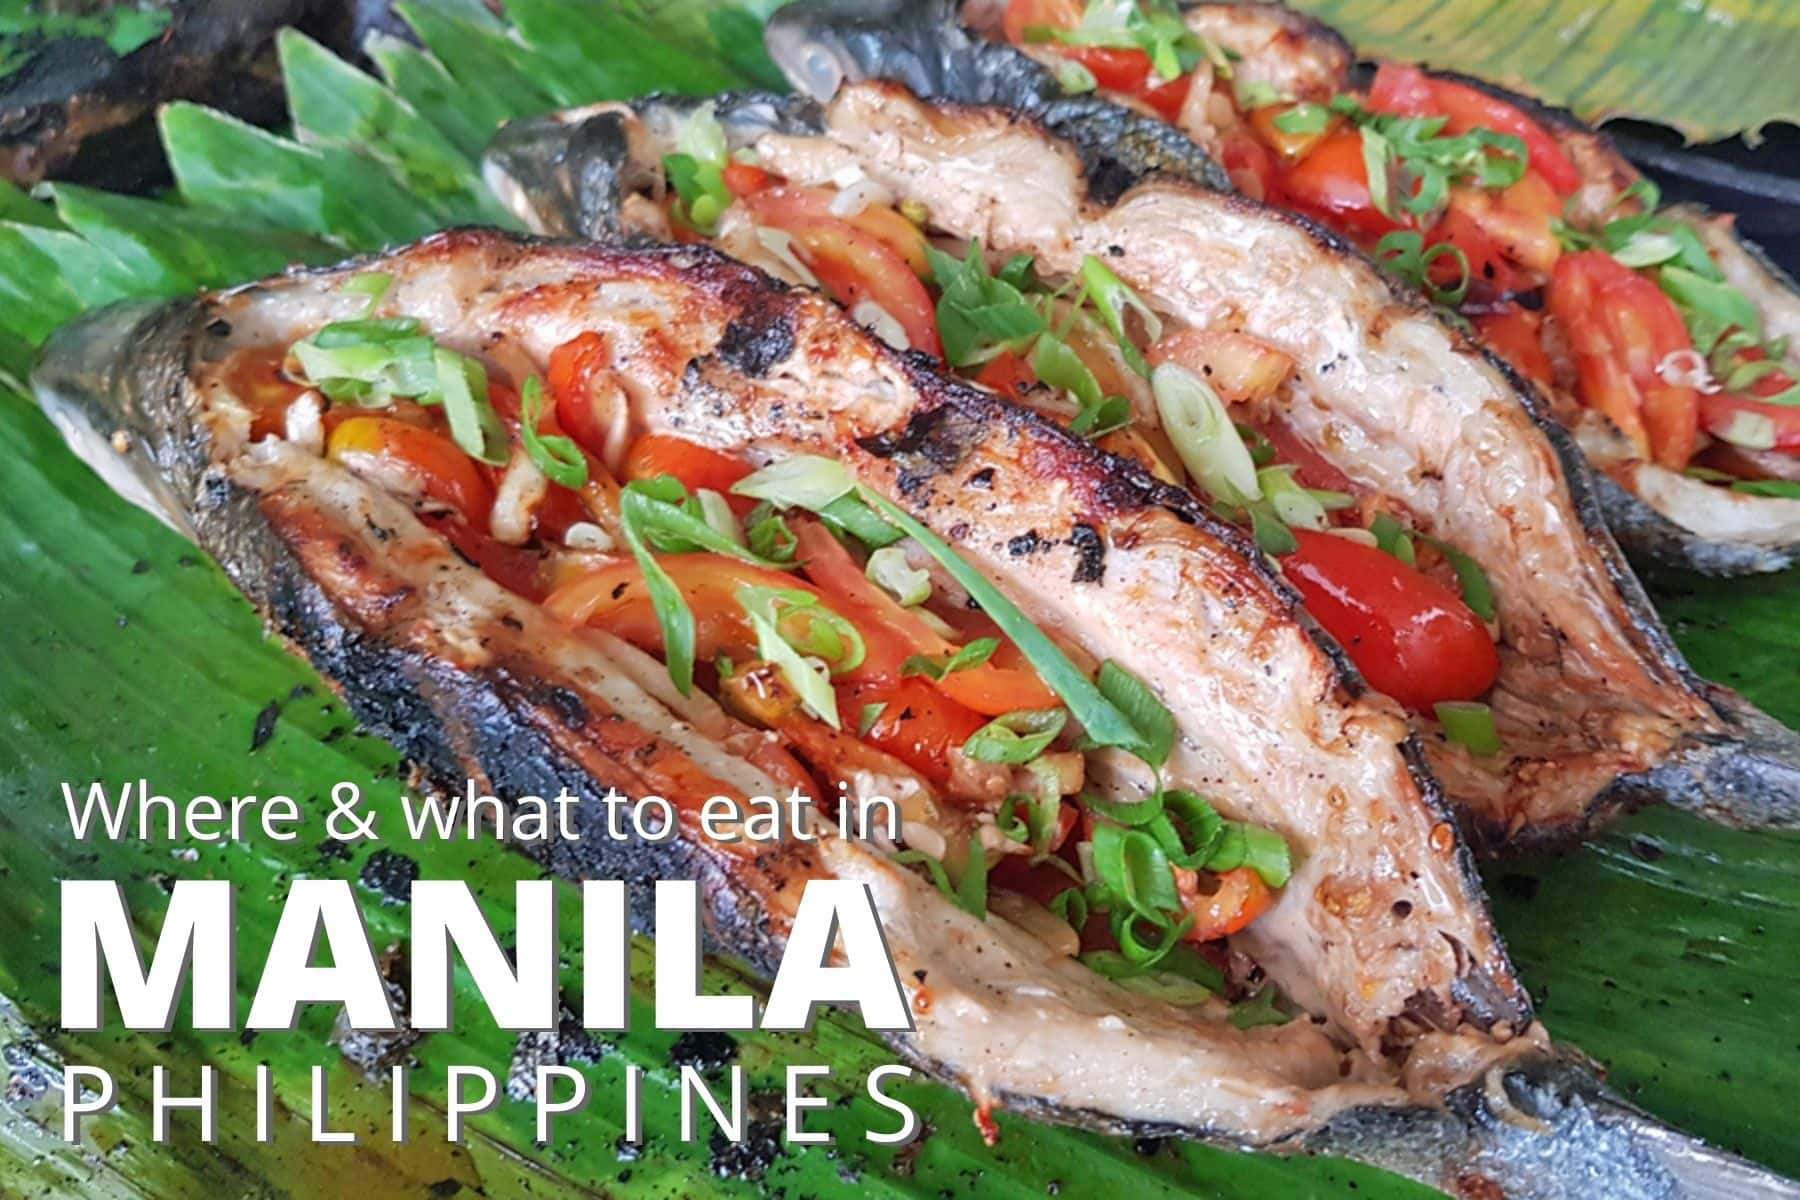 Where and what to eat in Manila, Philippines